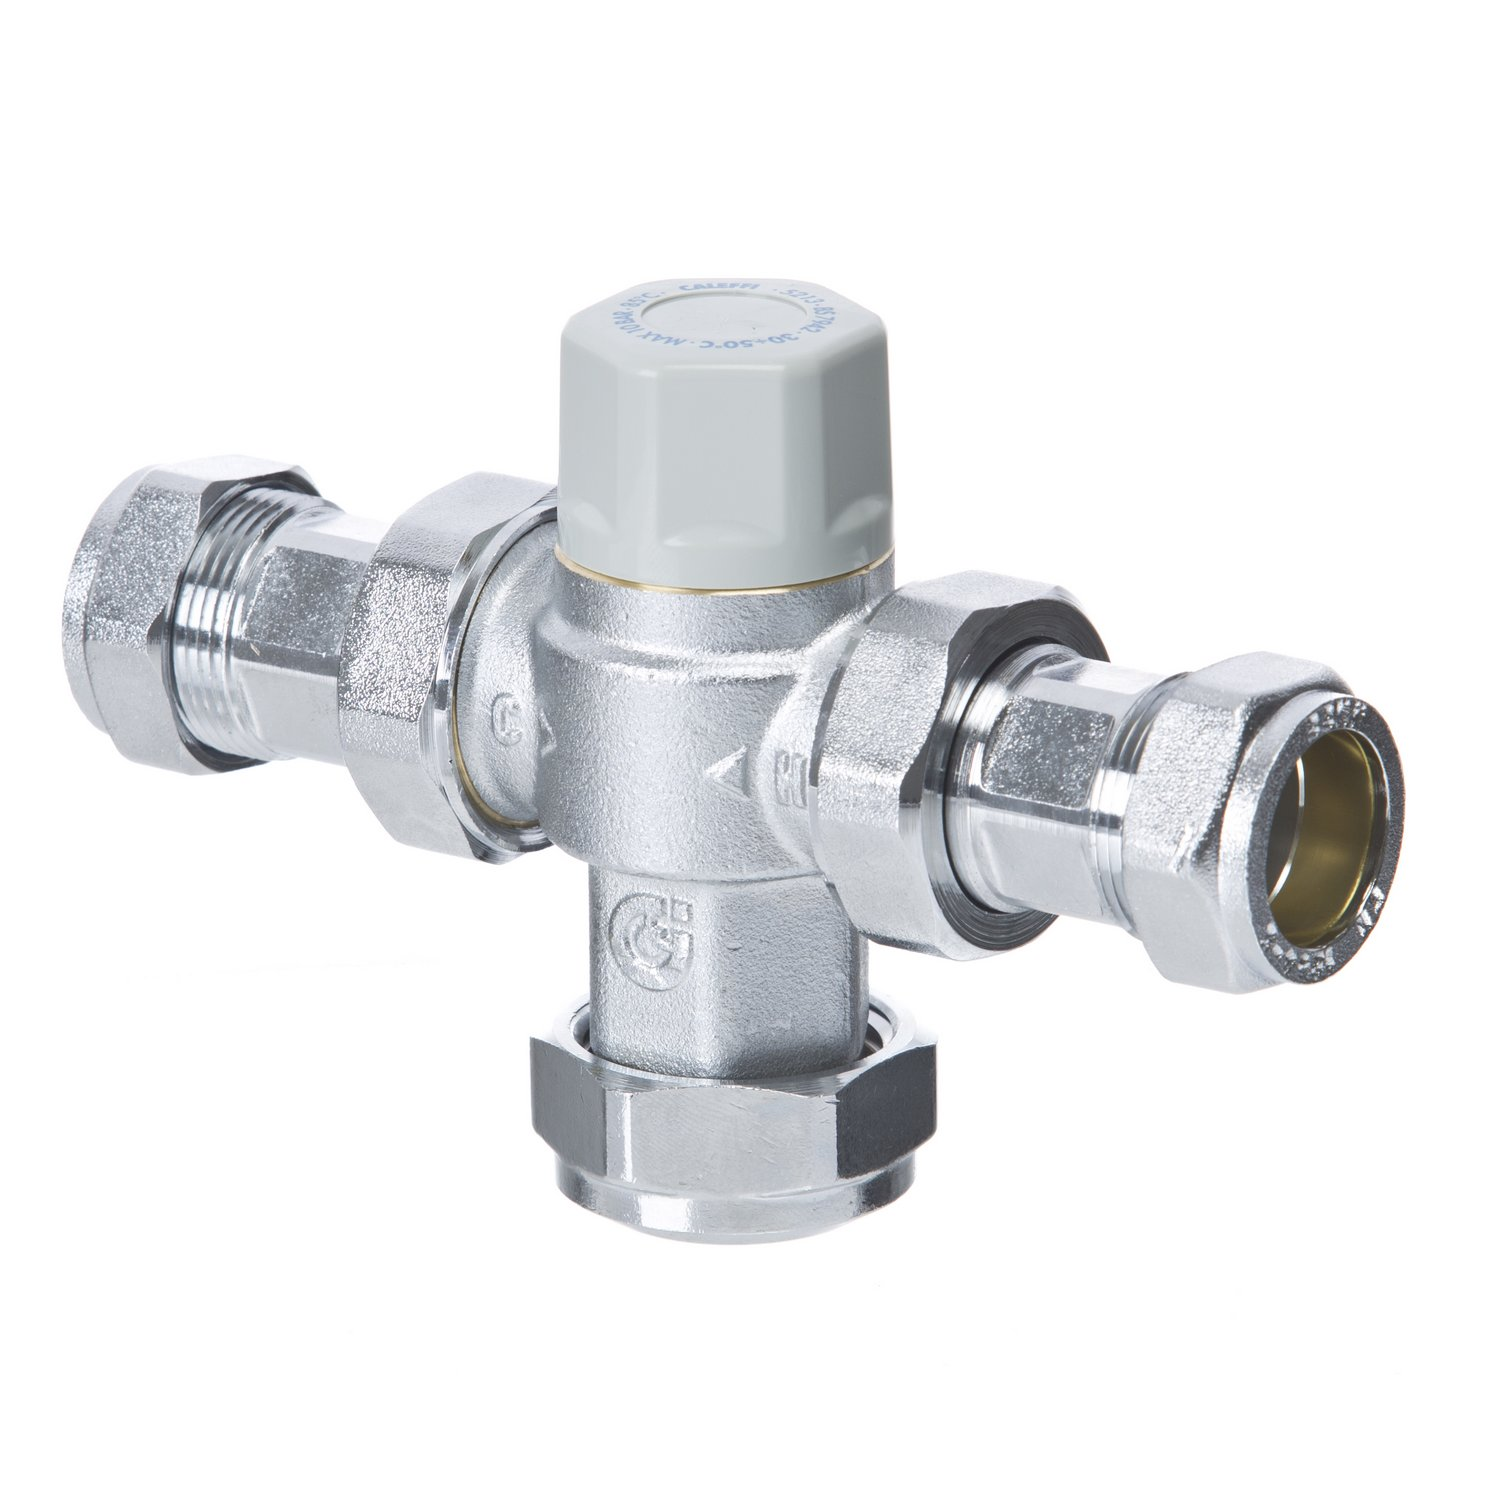 https://www.mepstock.co.uk/admin/images/MERCHANT MIXING VALVES - ART 5213.jpg